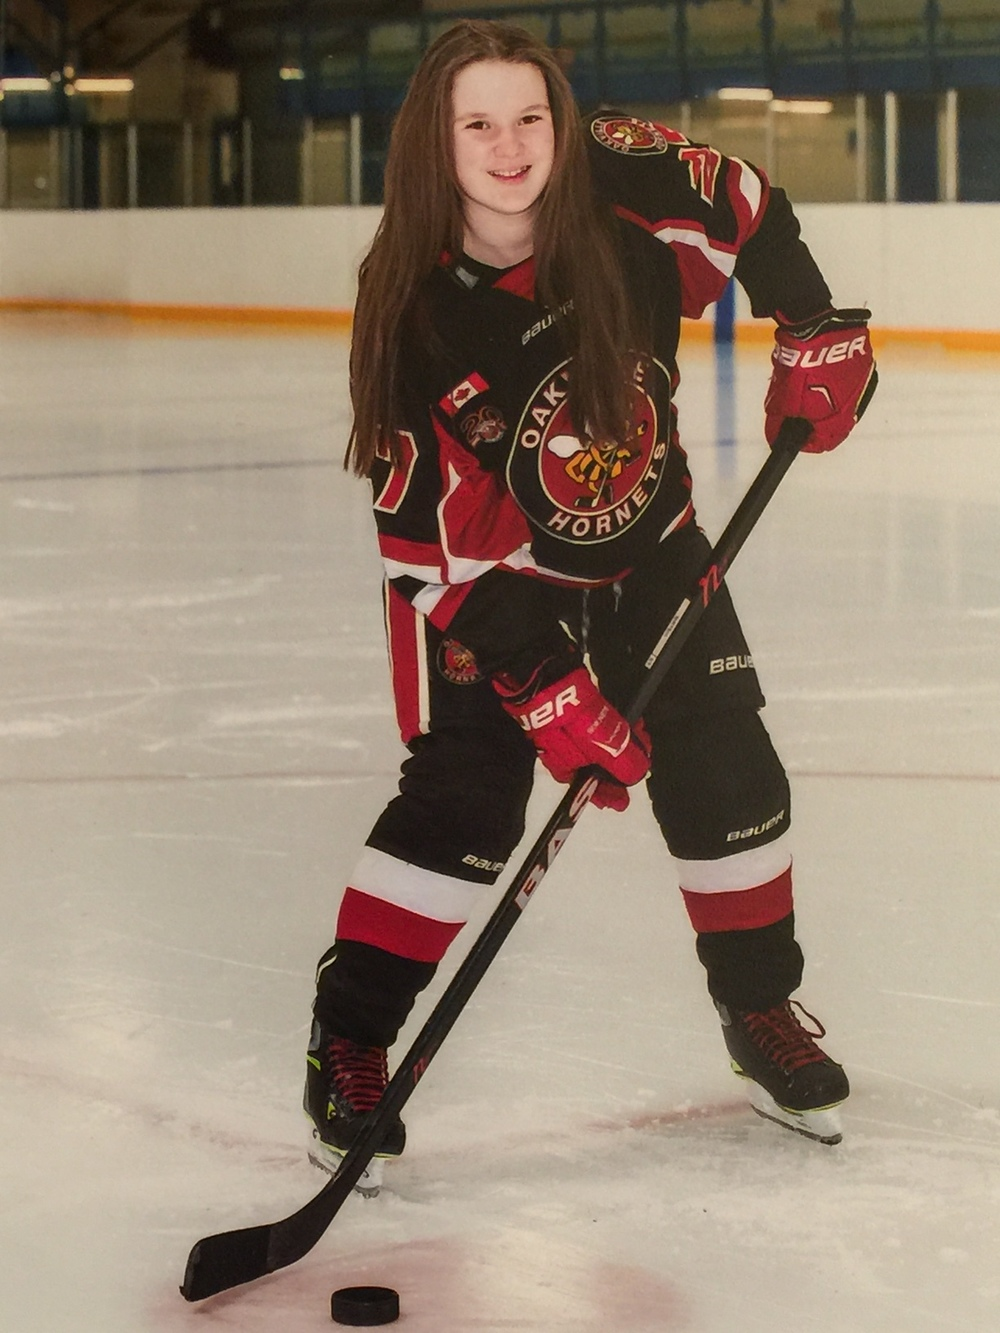 HANNAH BIRTCH  Hometown: Oakville Number: 27 Team: Oakville Hornets Peewee AA Position: Defense Shoots: Right Favorite Pre-Game Meal: Smoothie Favorite Hockey Player: Curtis Lazar   Northern Freeze Cups: 2